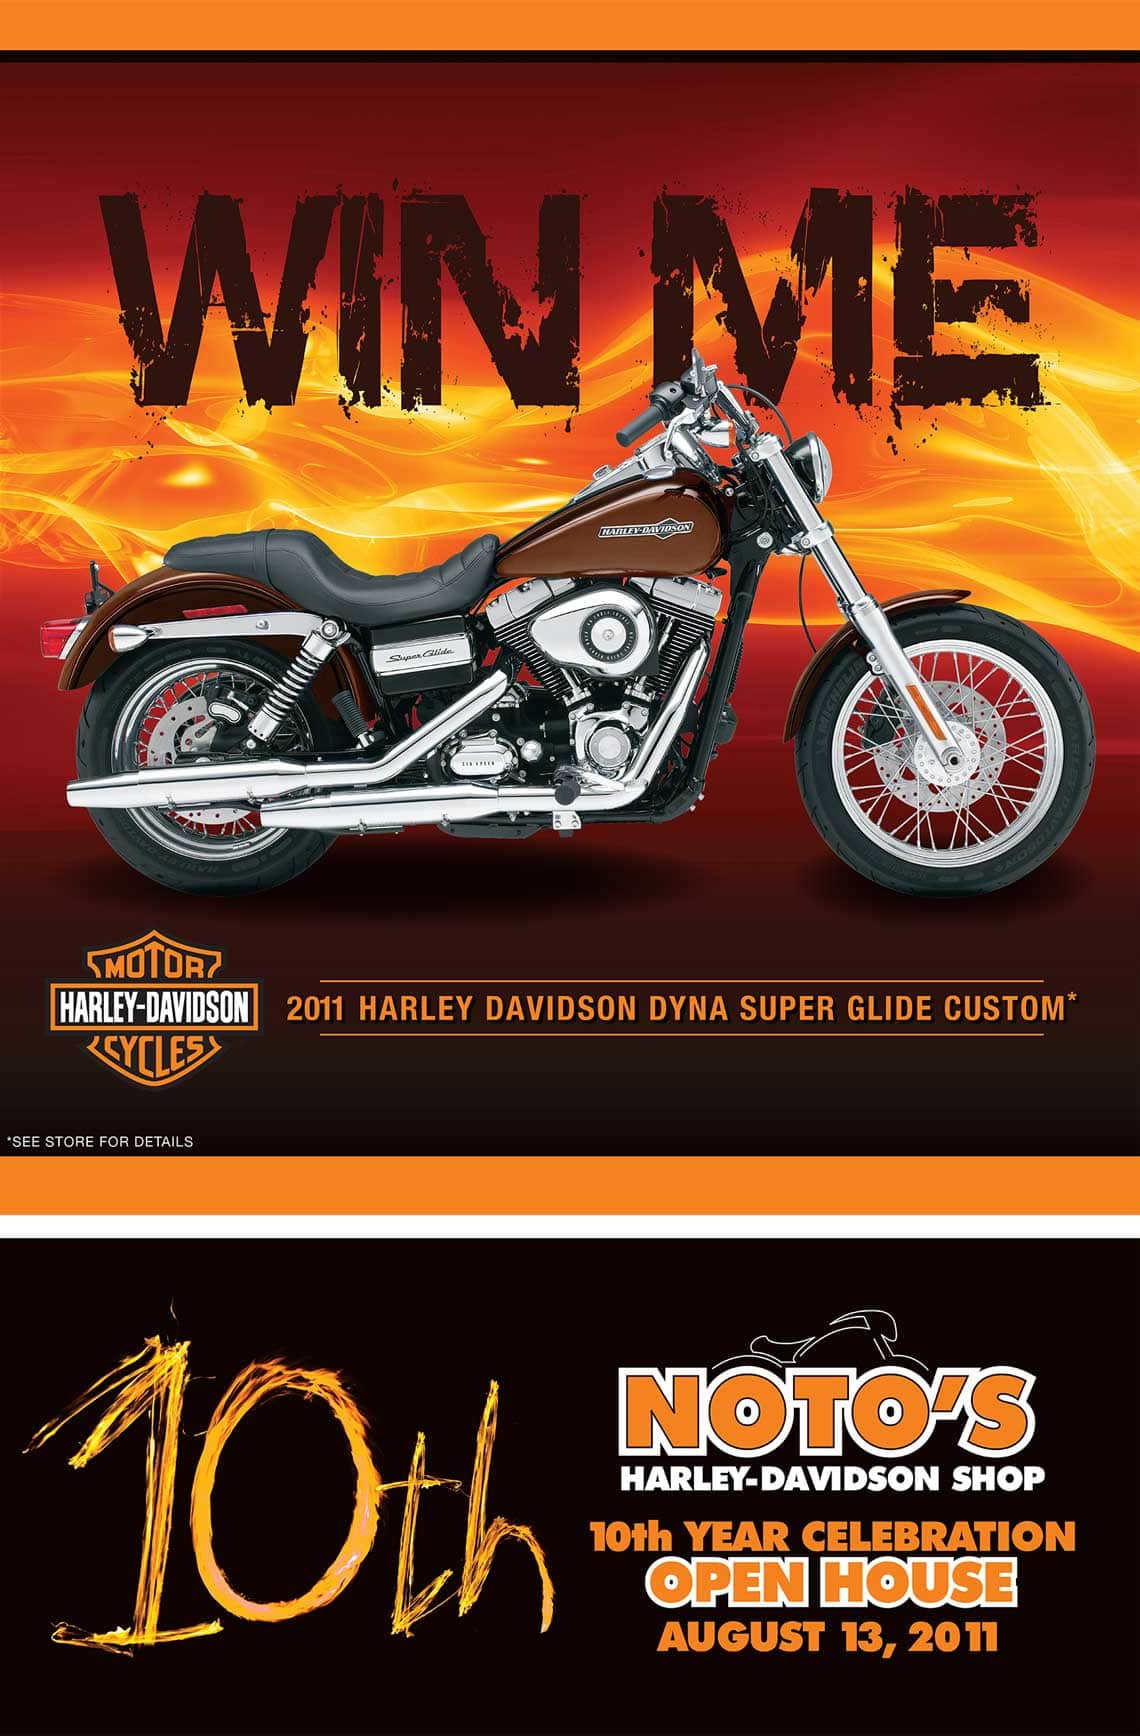 NOTO Harley Davidson Shop Poster by Rooster Creative